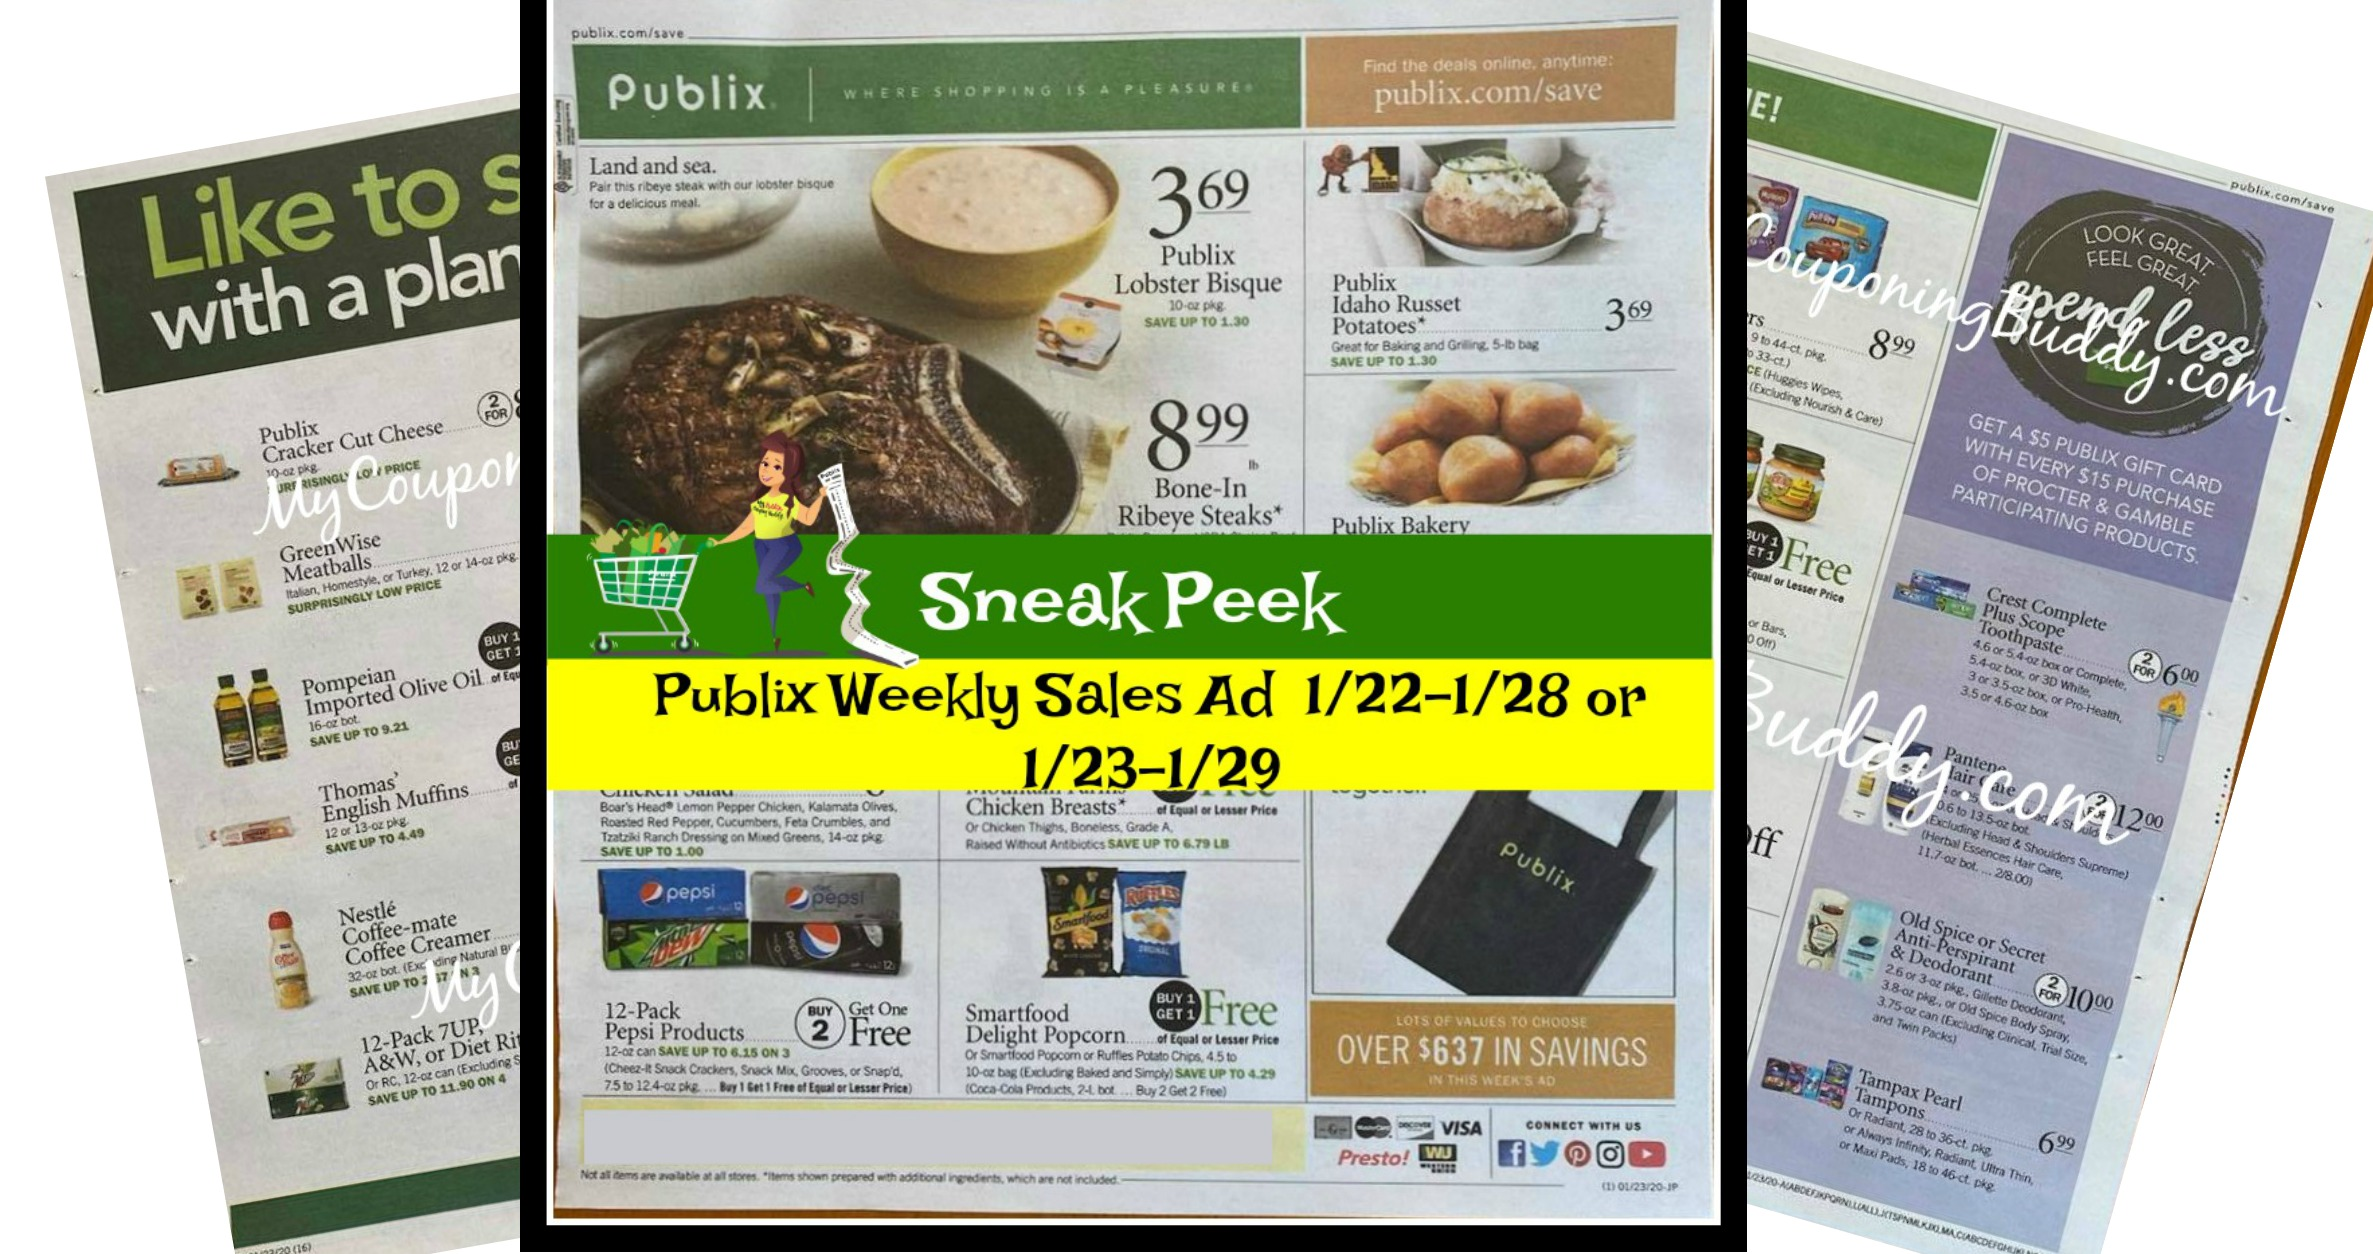 Publix Weekly Ad Preview 1 23 20 1 29 20 Or 1 22 1 28 20